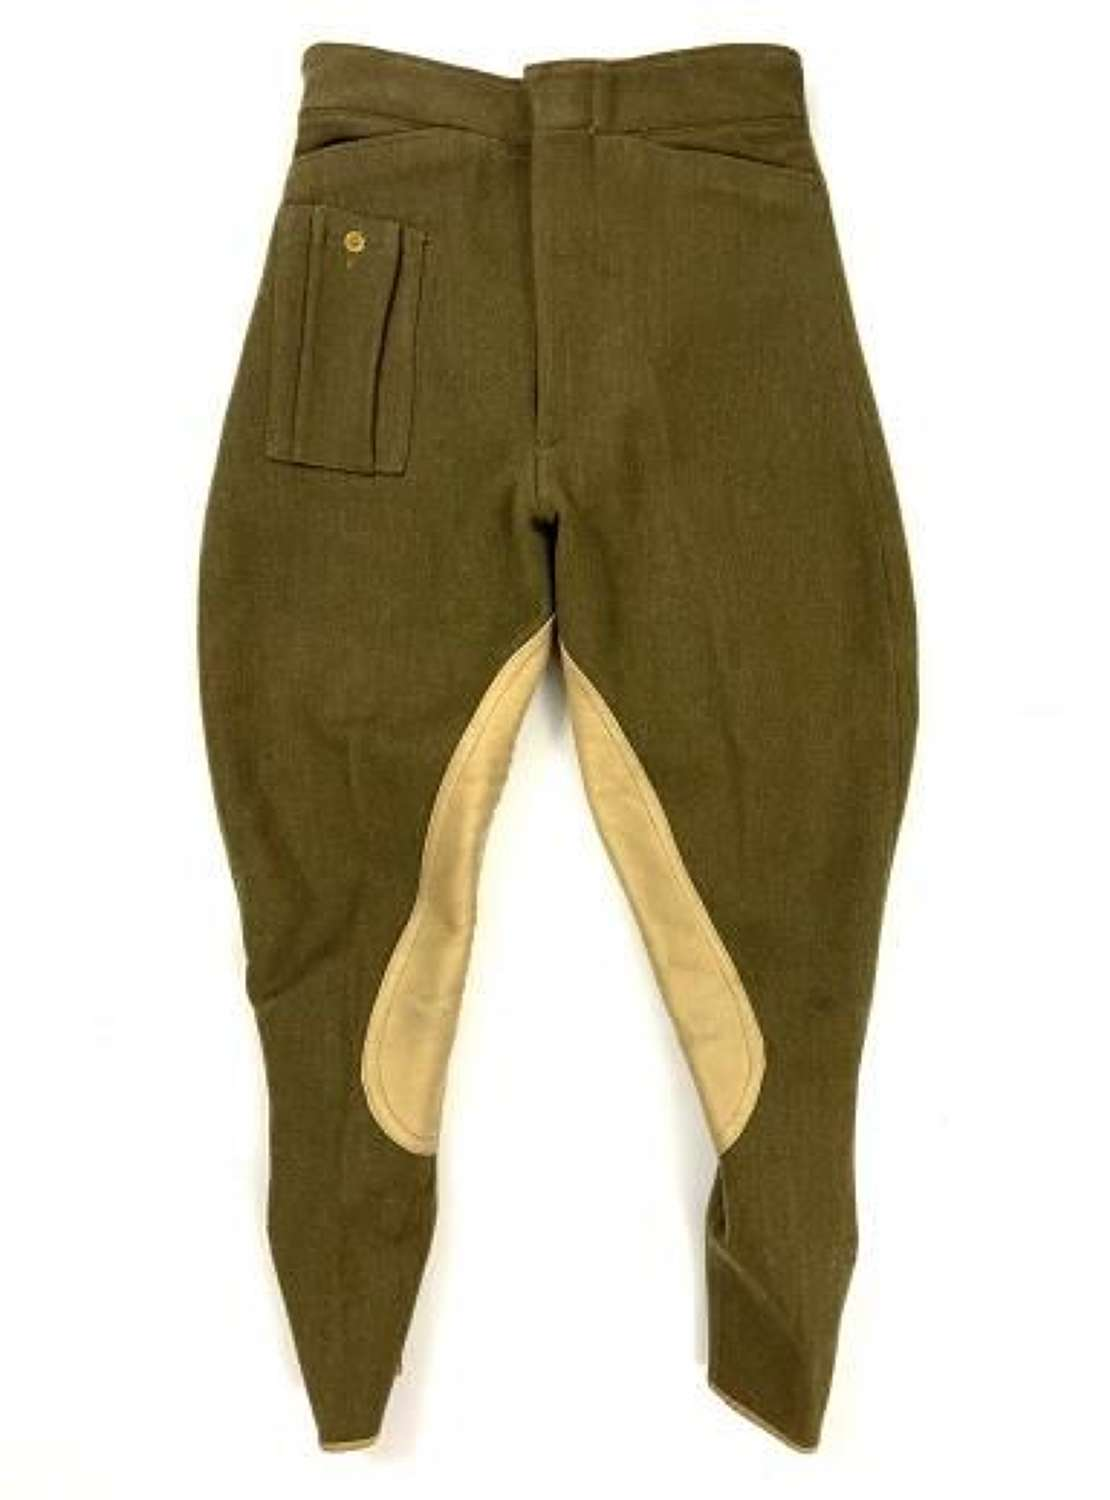 Original 1942 Dated British Army Dispatch Riders Breeches